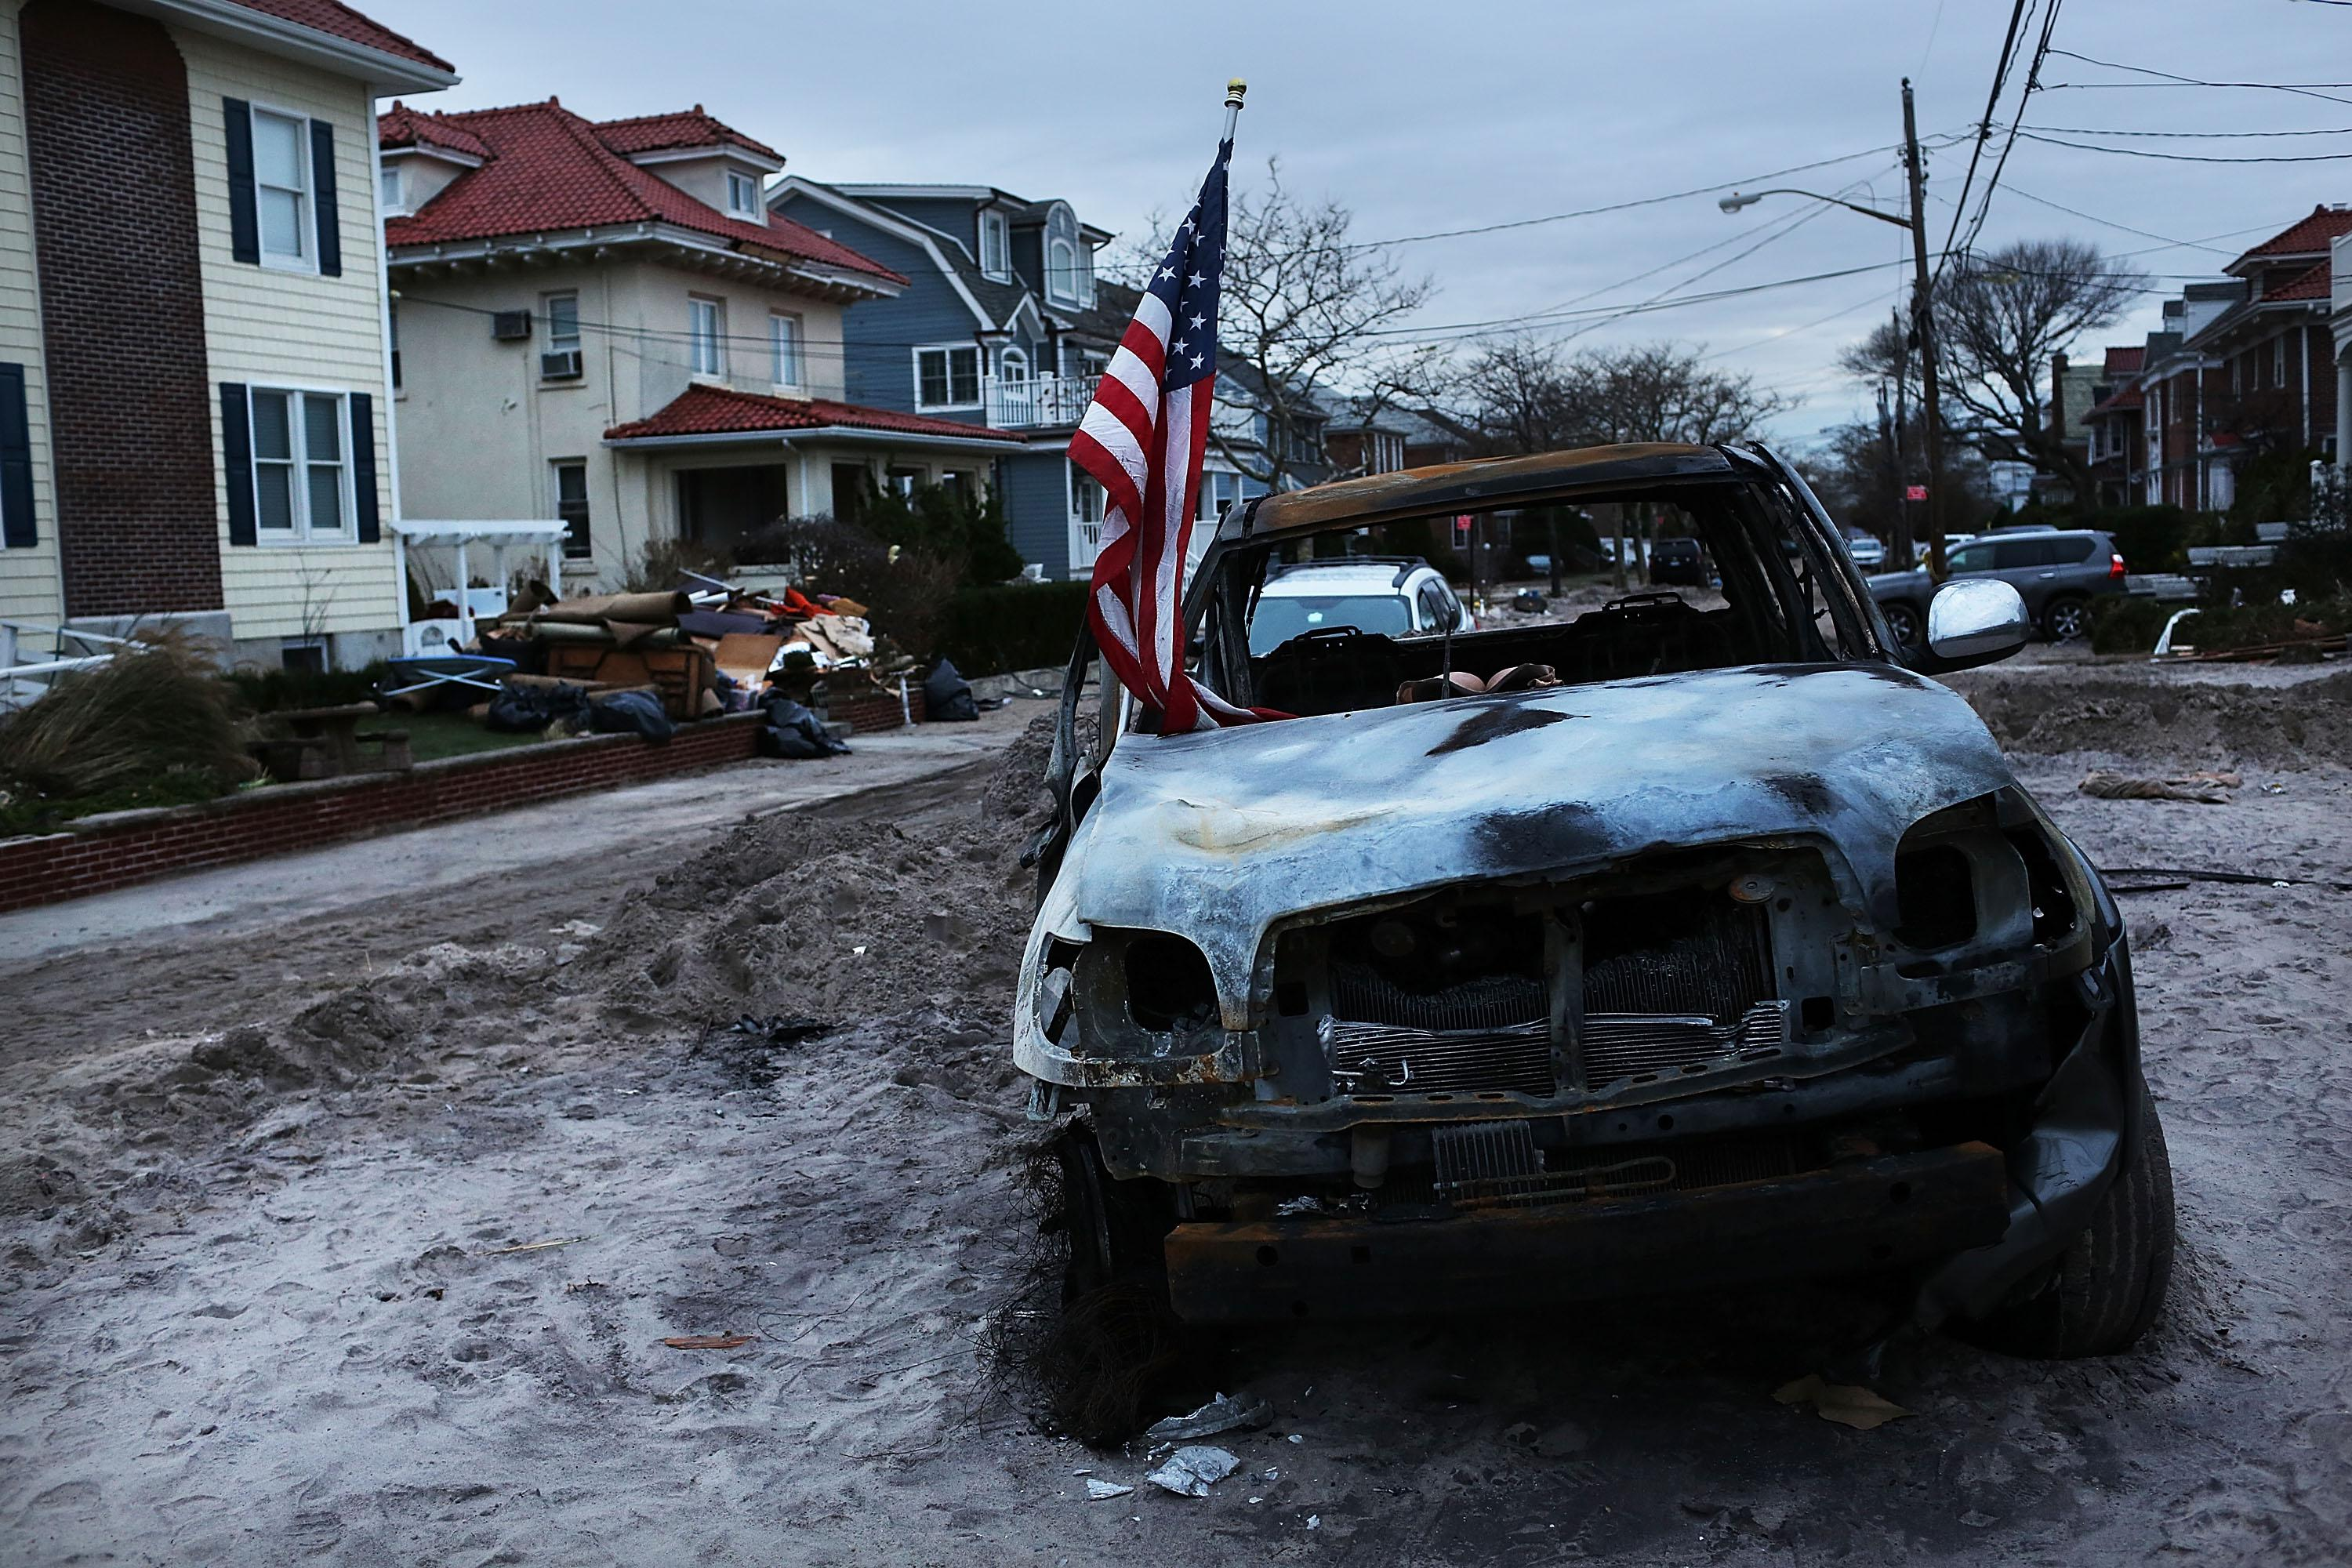 A destroyed car sits in the street in the heavily damaged Rockaway neighborhood, in Queens where a large section of the iconic boardwalk was washed away on November 2, 2012 in New York.